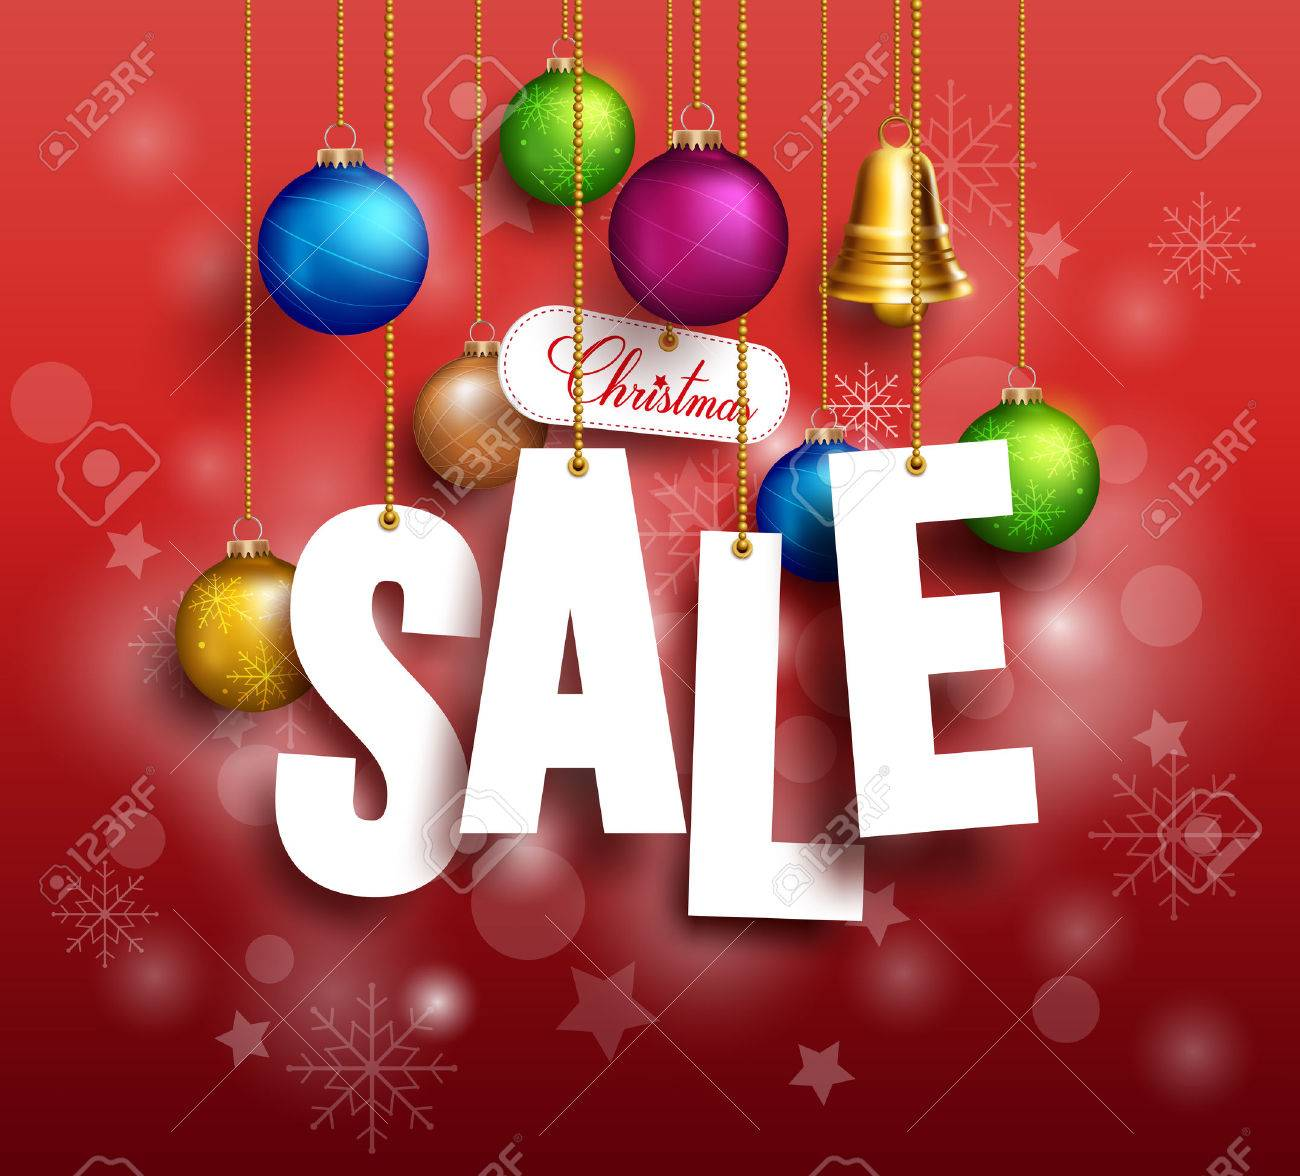 3D Christmas Sale Text Hanging for Promotion with a Christmas Balls and Decorations in Red Background. Realistic Vector Illustration - 46524784